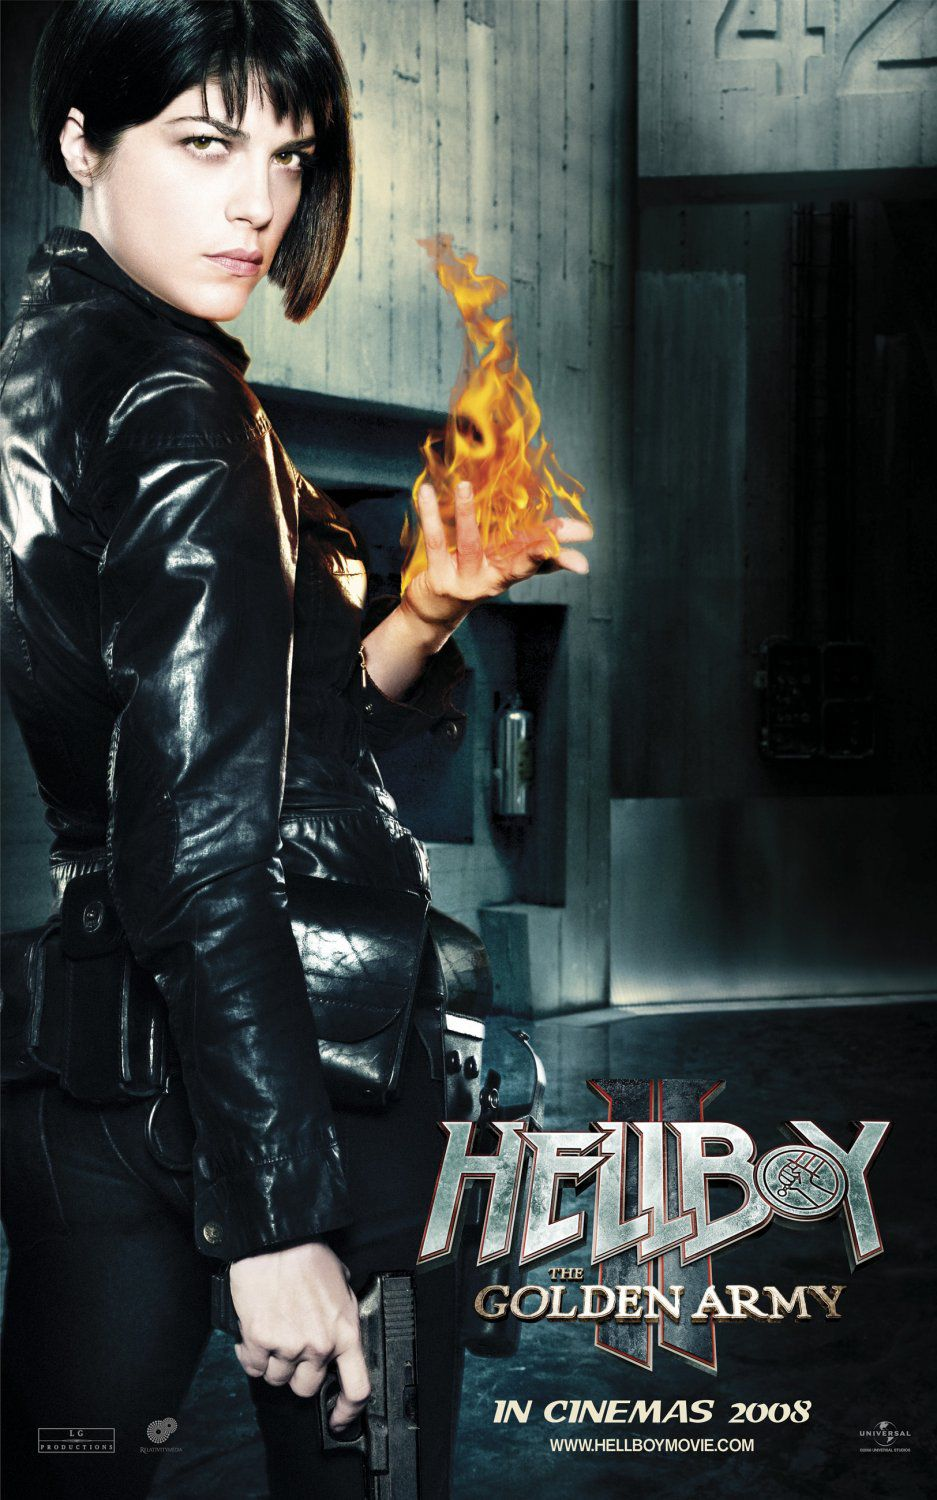 Hellboy 2 - Golden Army - live action film - poster - Liz Sherman